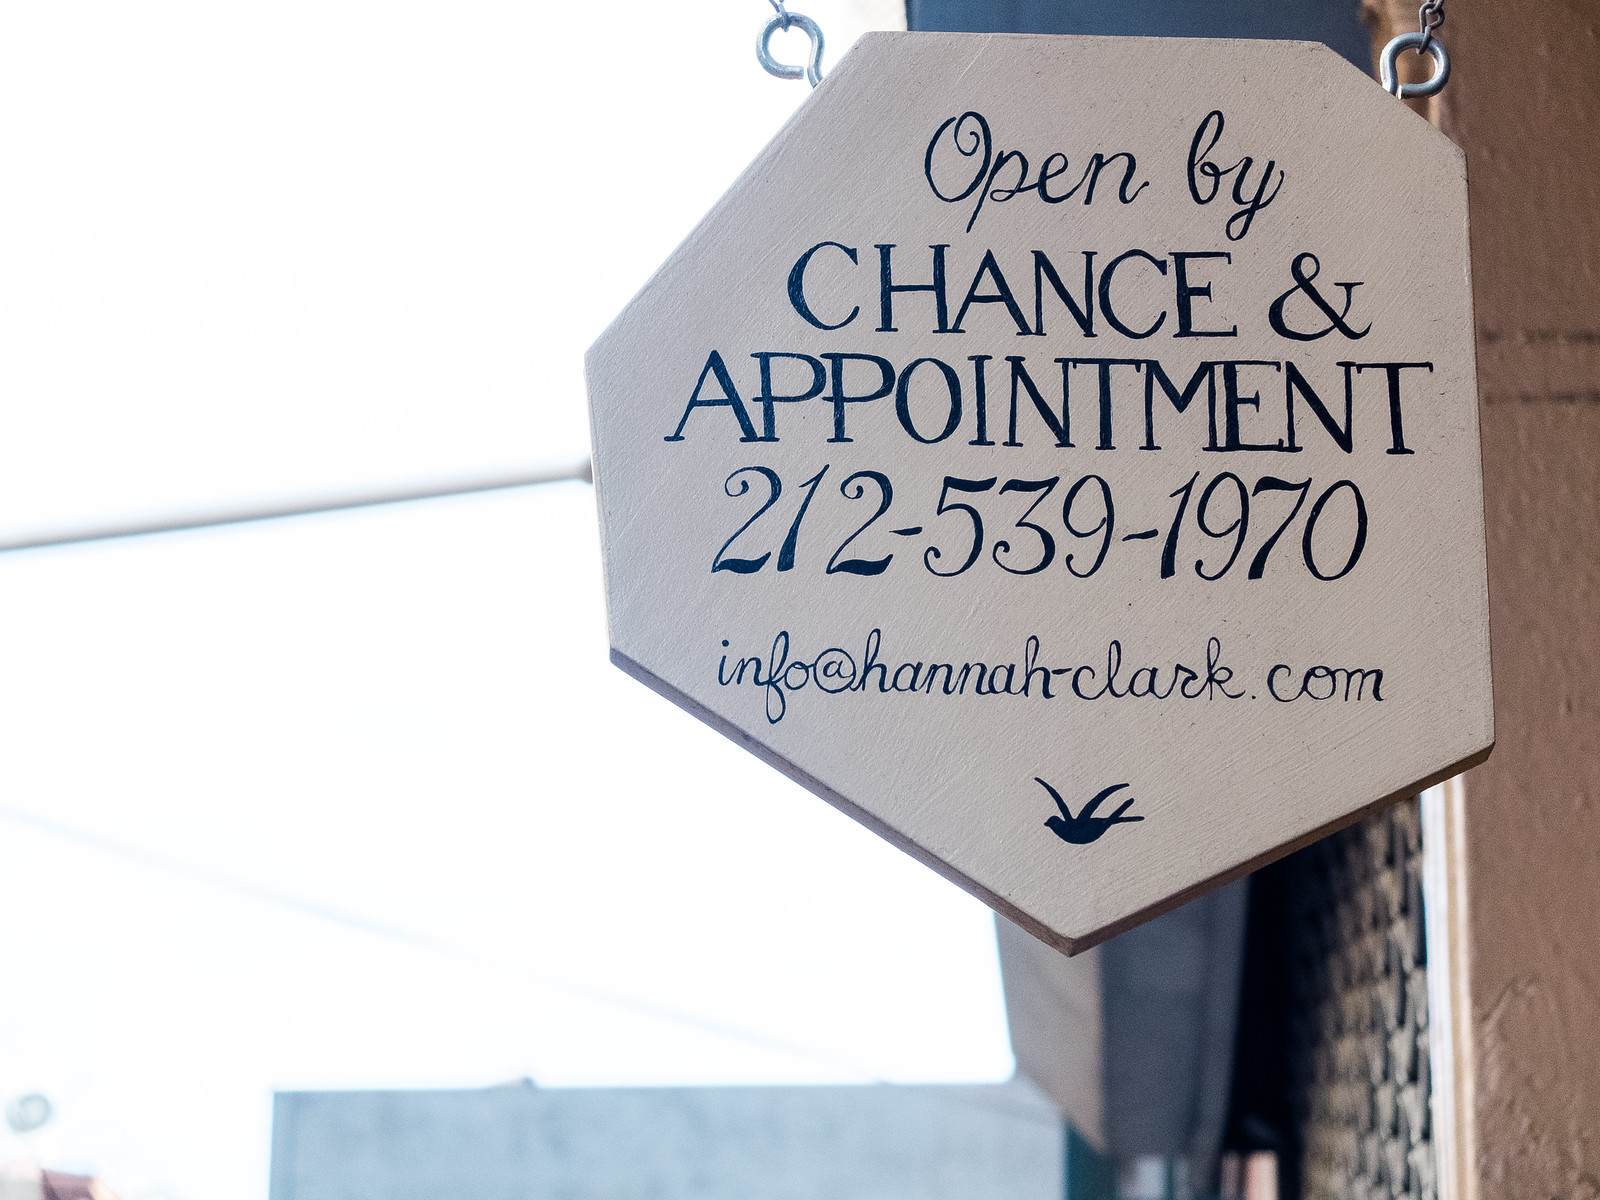 CHANCE & APPOINTMENT by wwward0